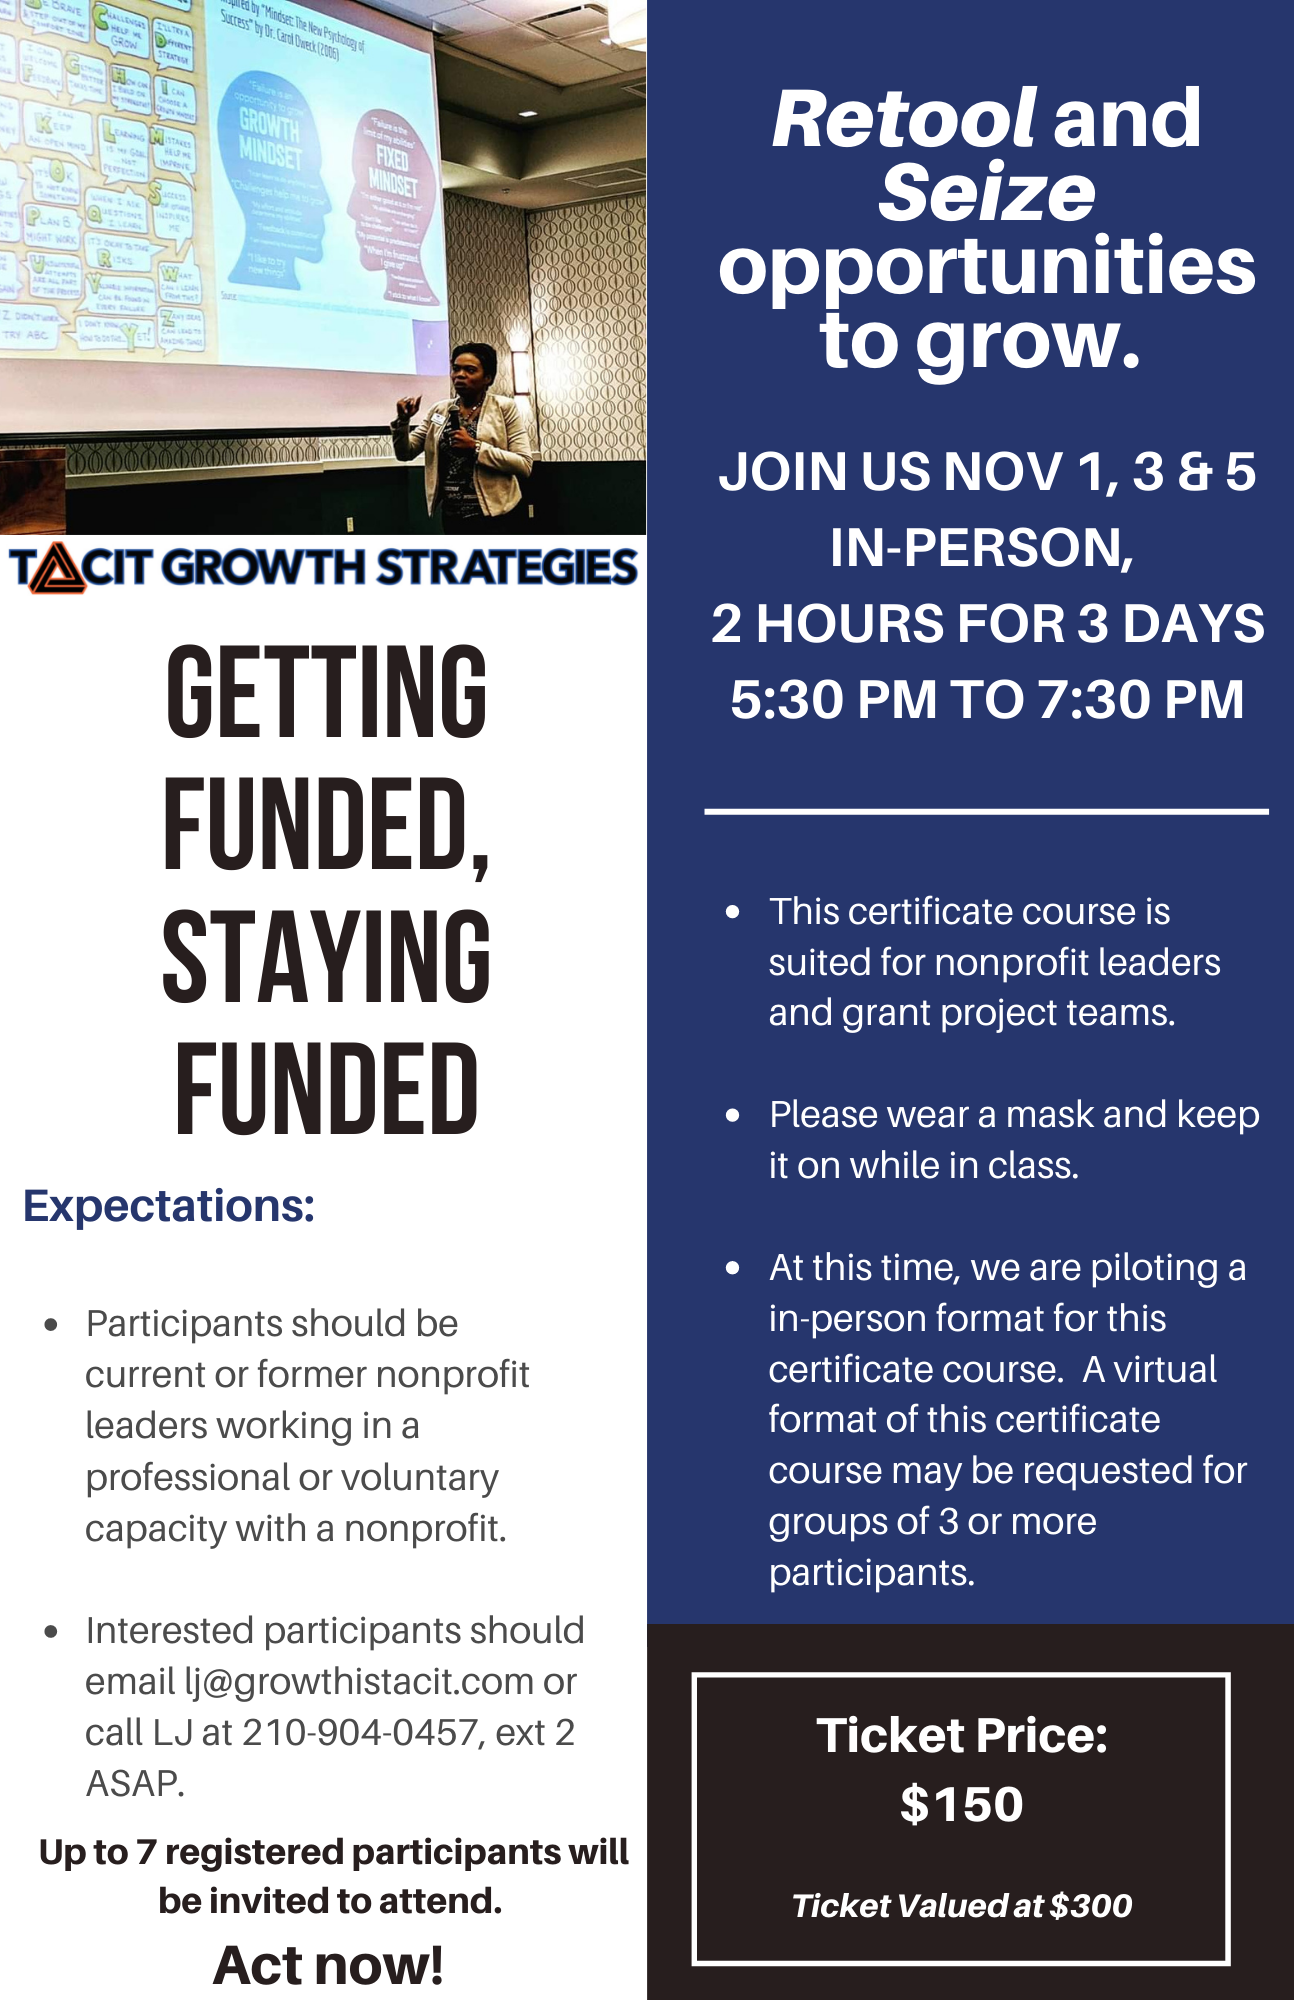 Getting Funded, Staying Funded by Tacit Growth Strategies